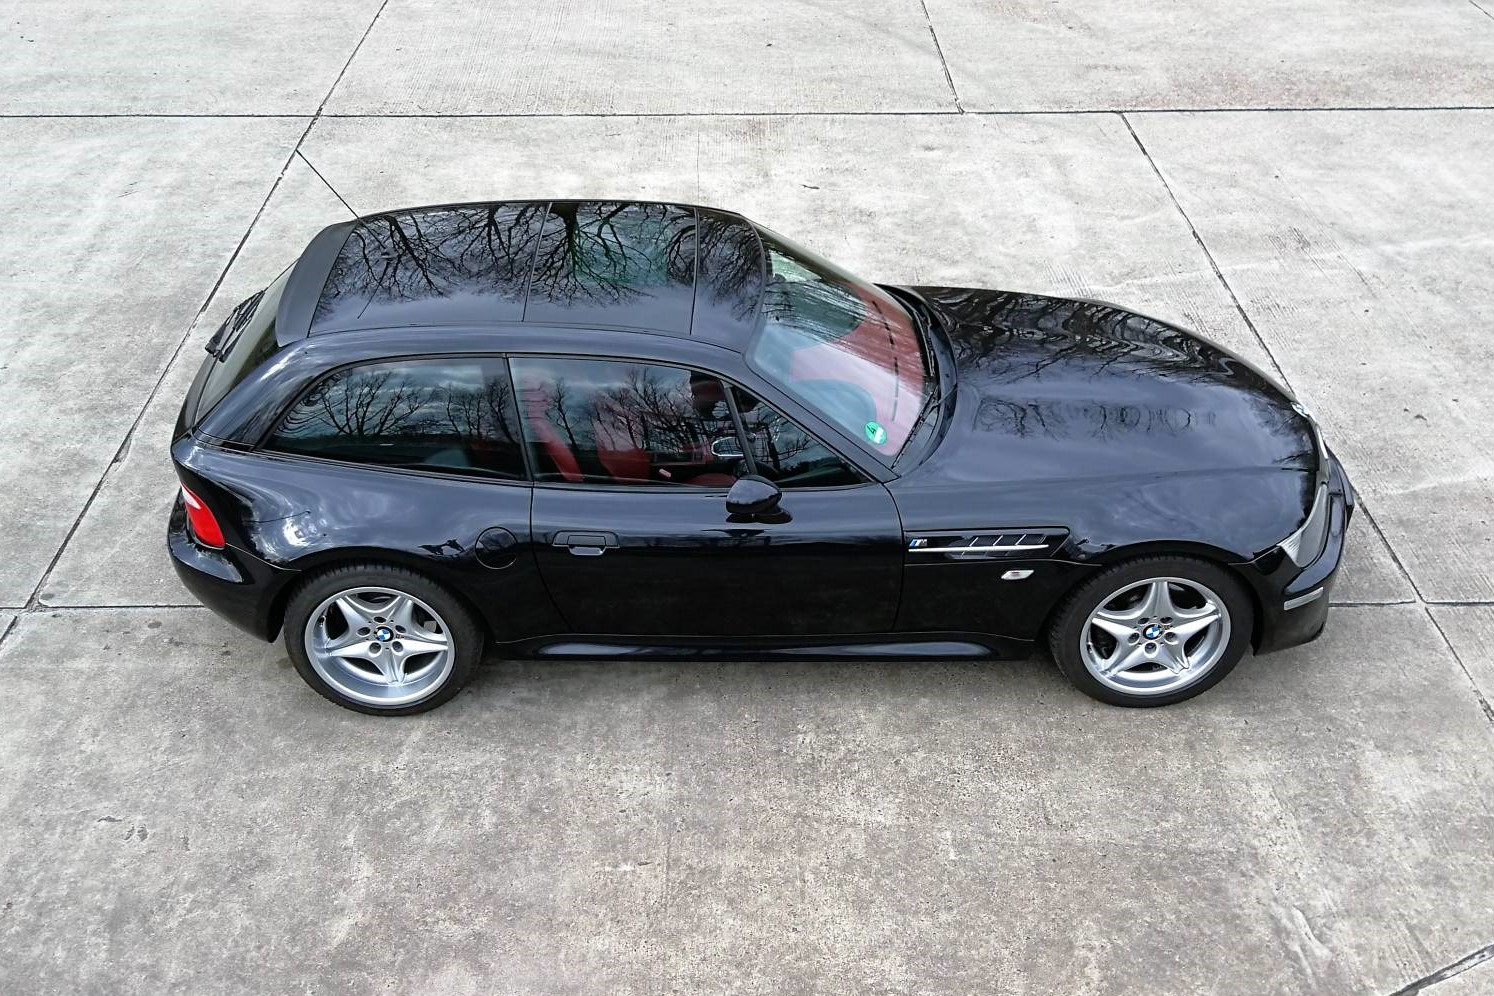 Bmw Z3 M Coupe Buying Guide Germans Do Love A Bit Of Fun